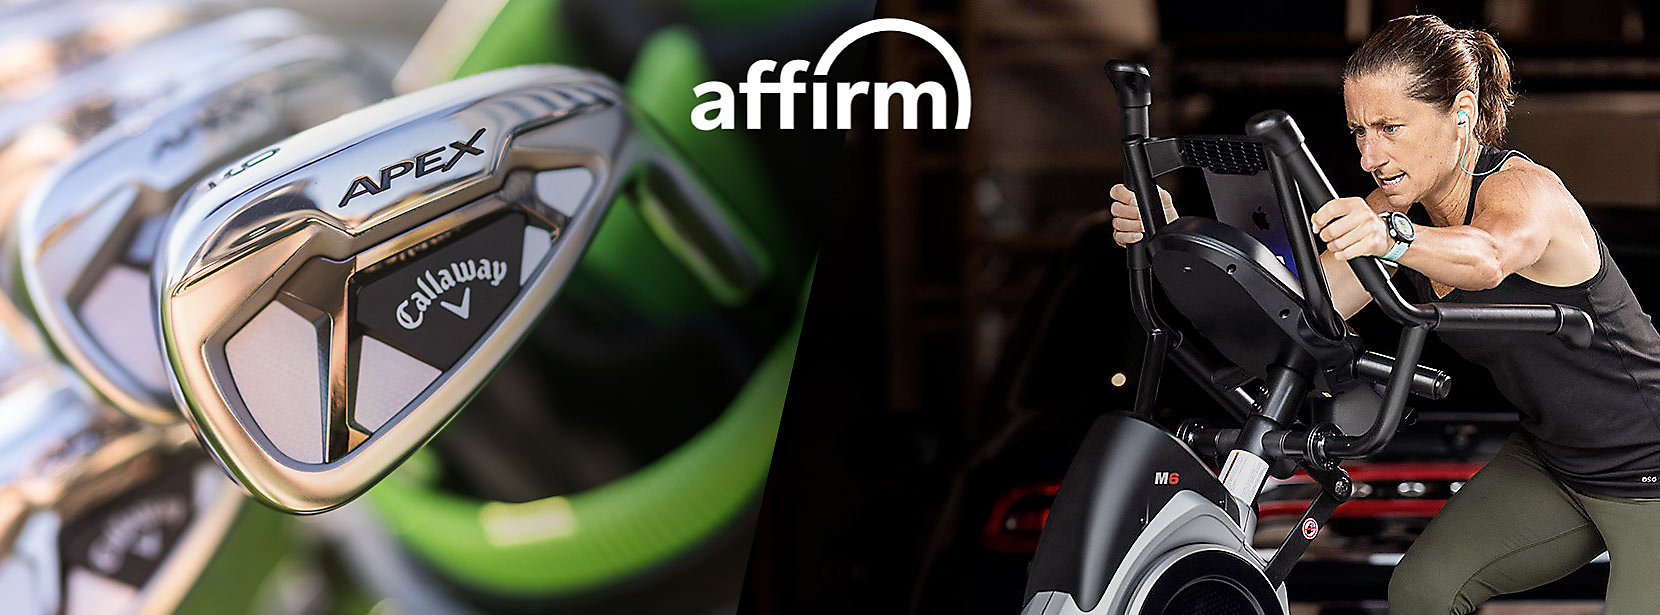 Affirm logo on image with fitness and golf equipment.